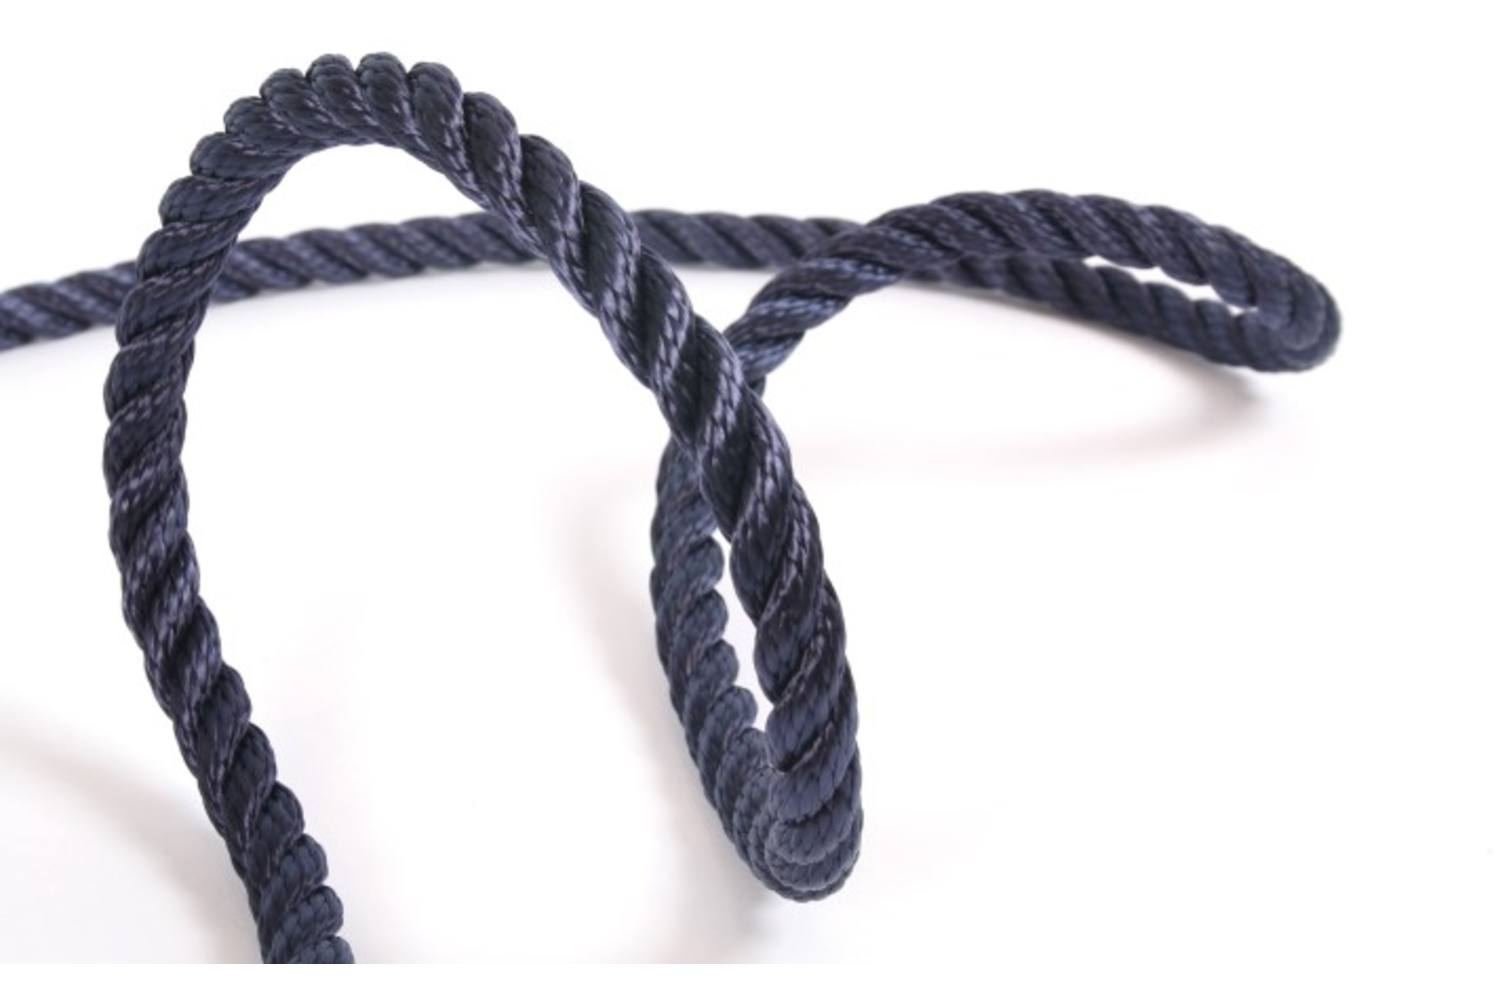 M-Ropes Polypropyleen PPM touw 3-strengs navy - 14mm